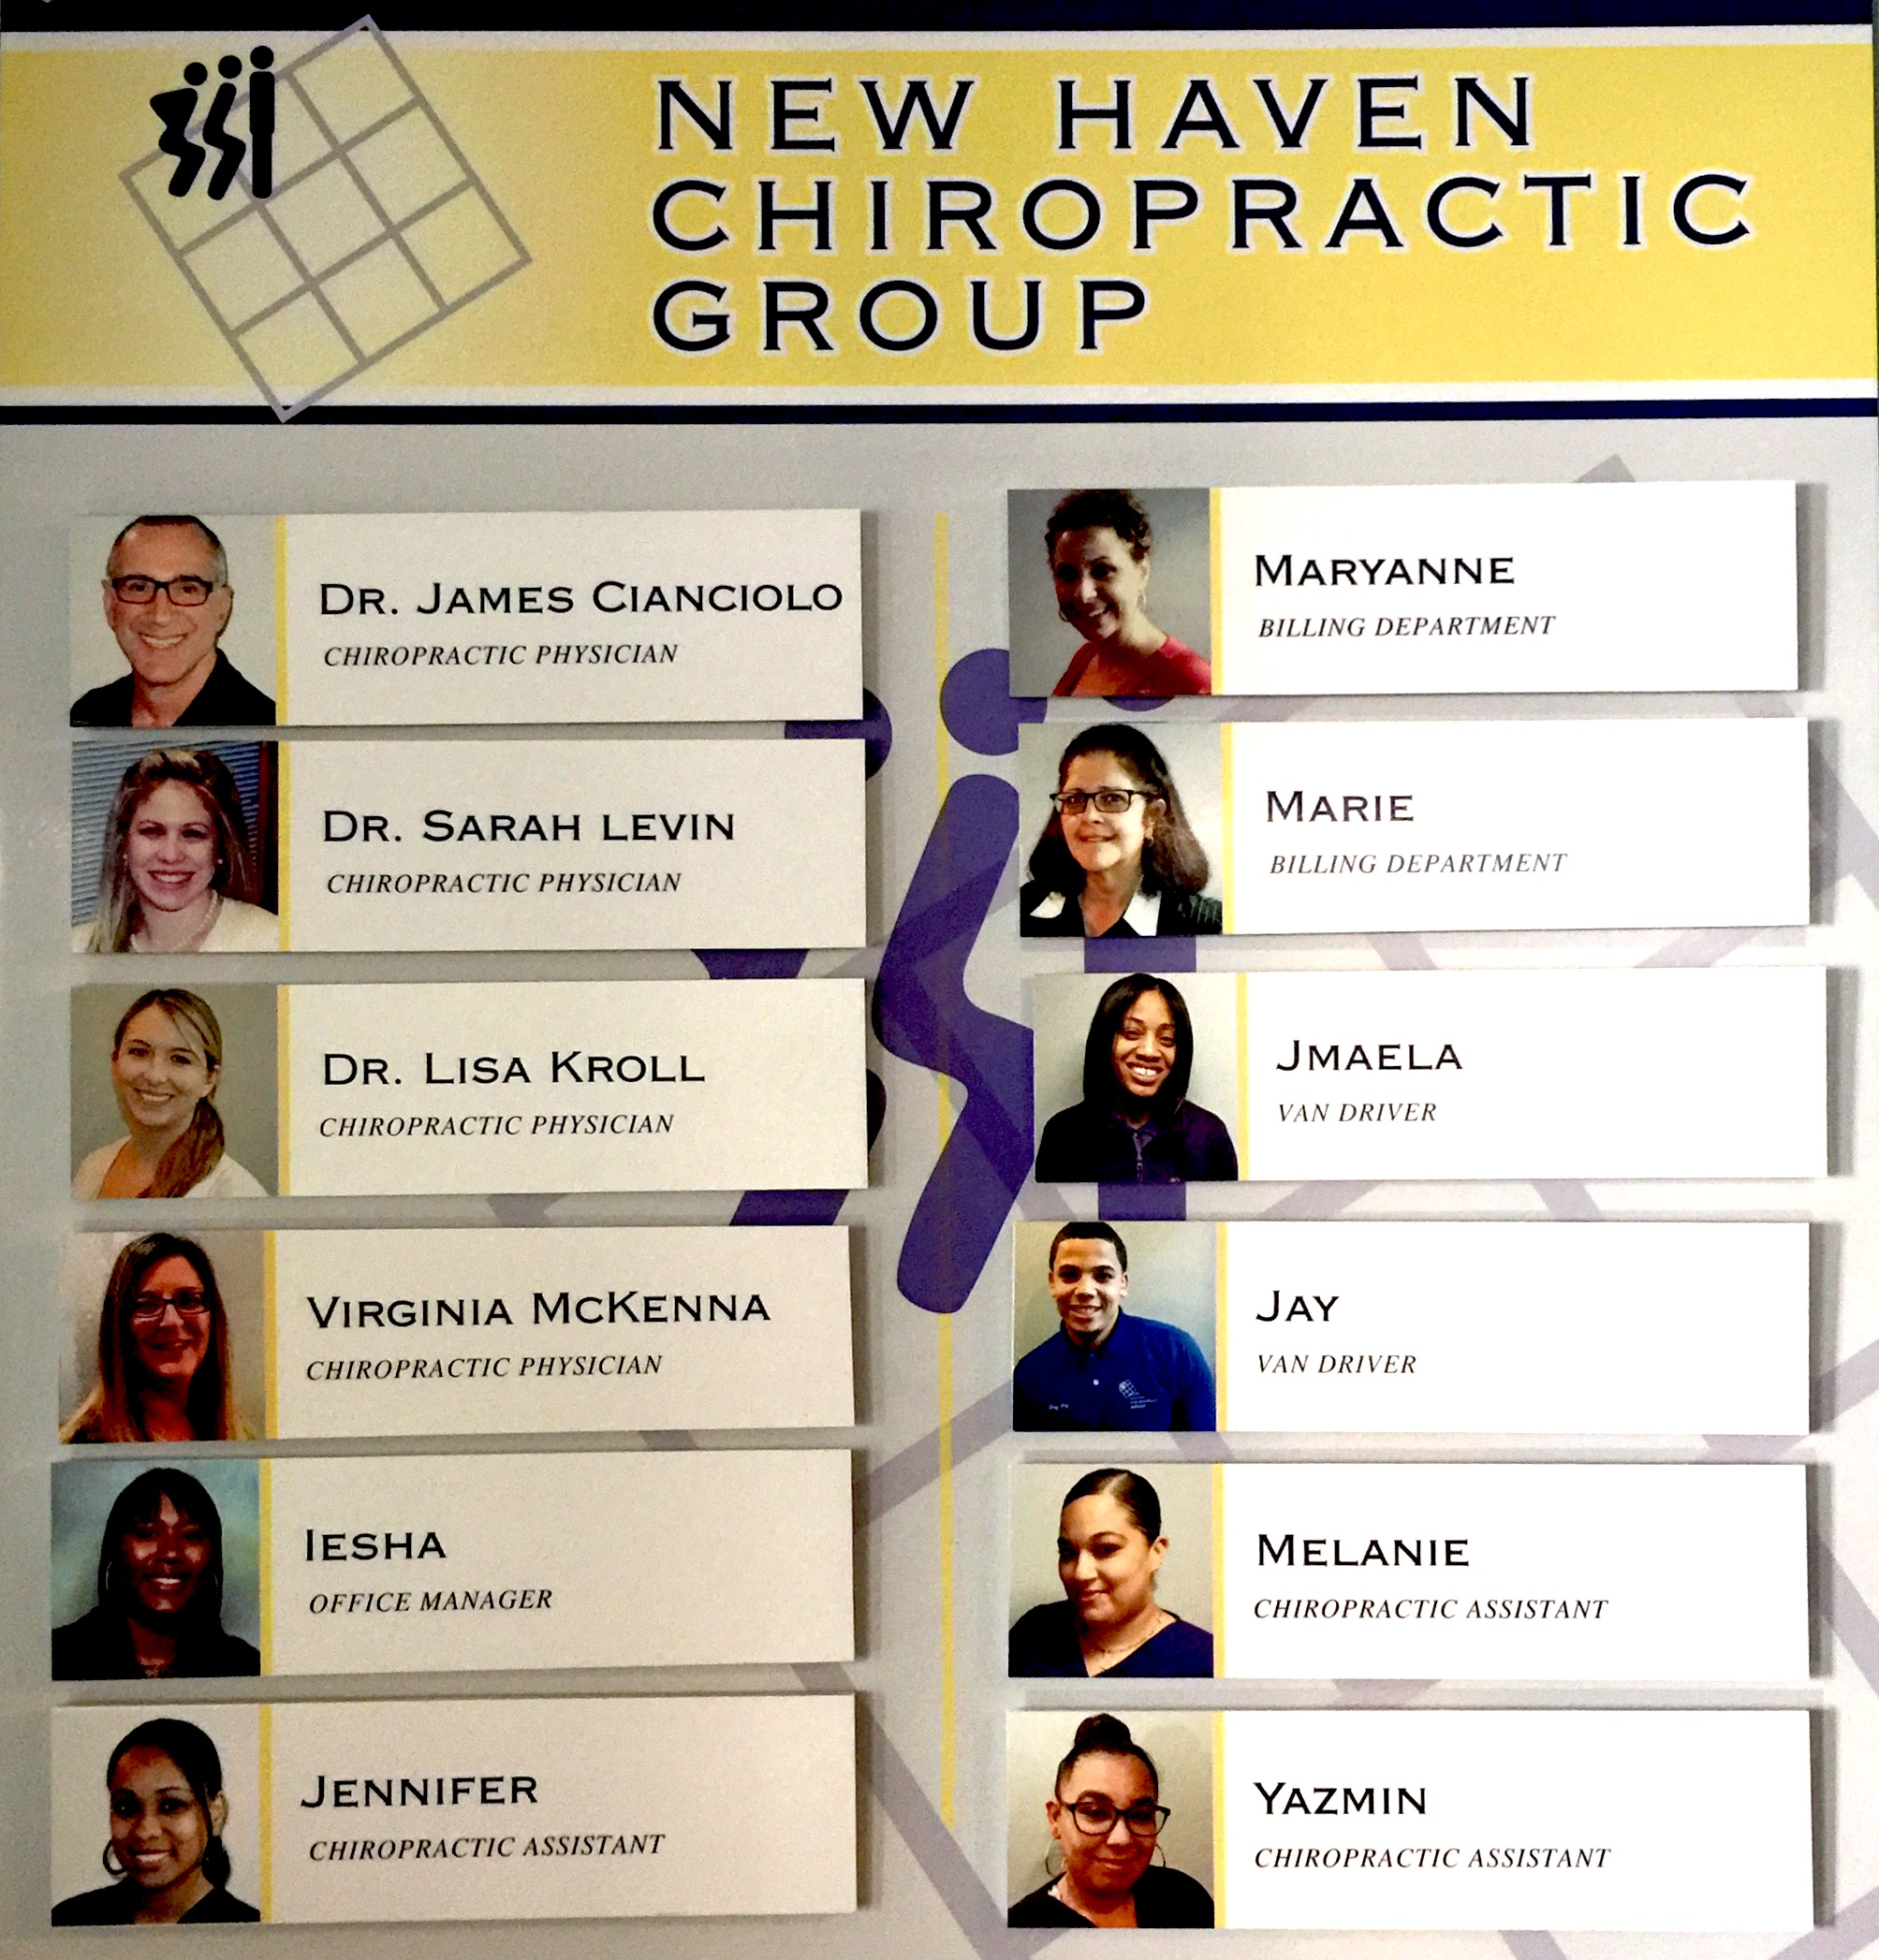 new haven chiropractic group board